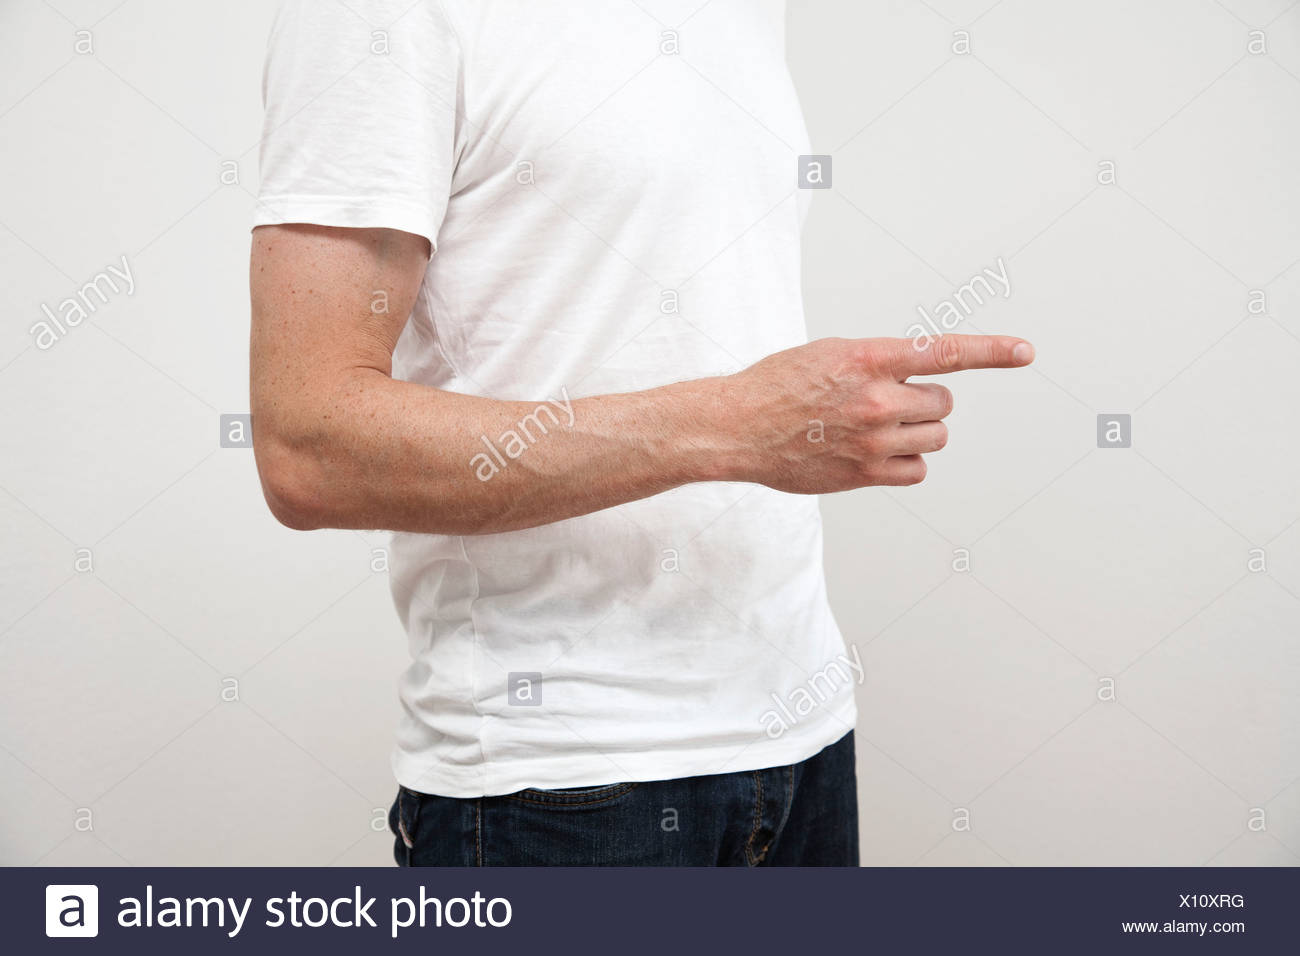 Close up of man's pointing finger - Stock Image